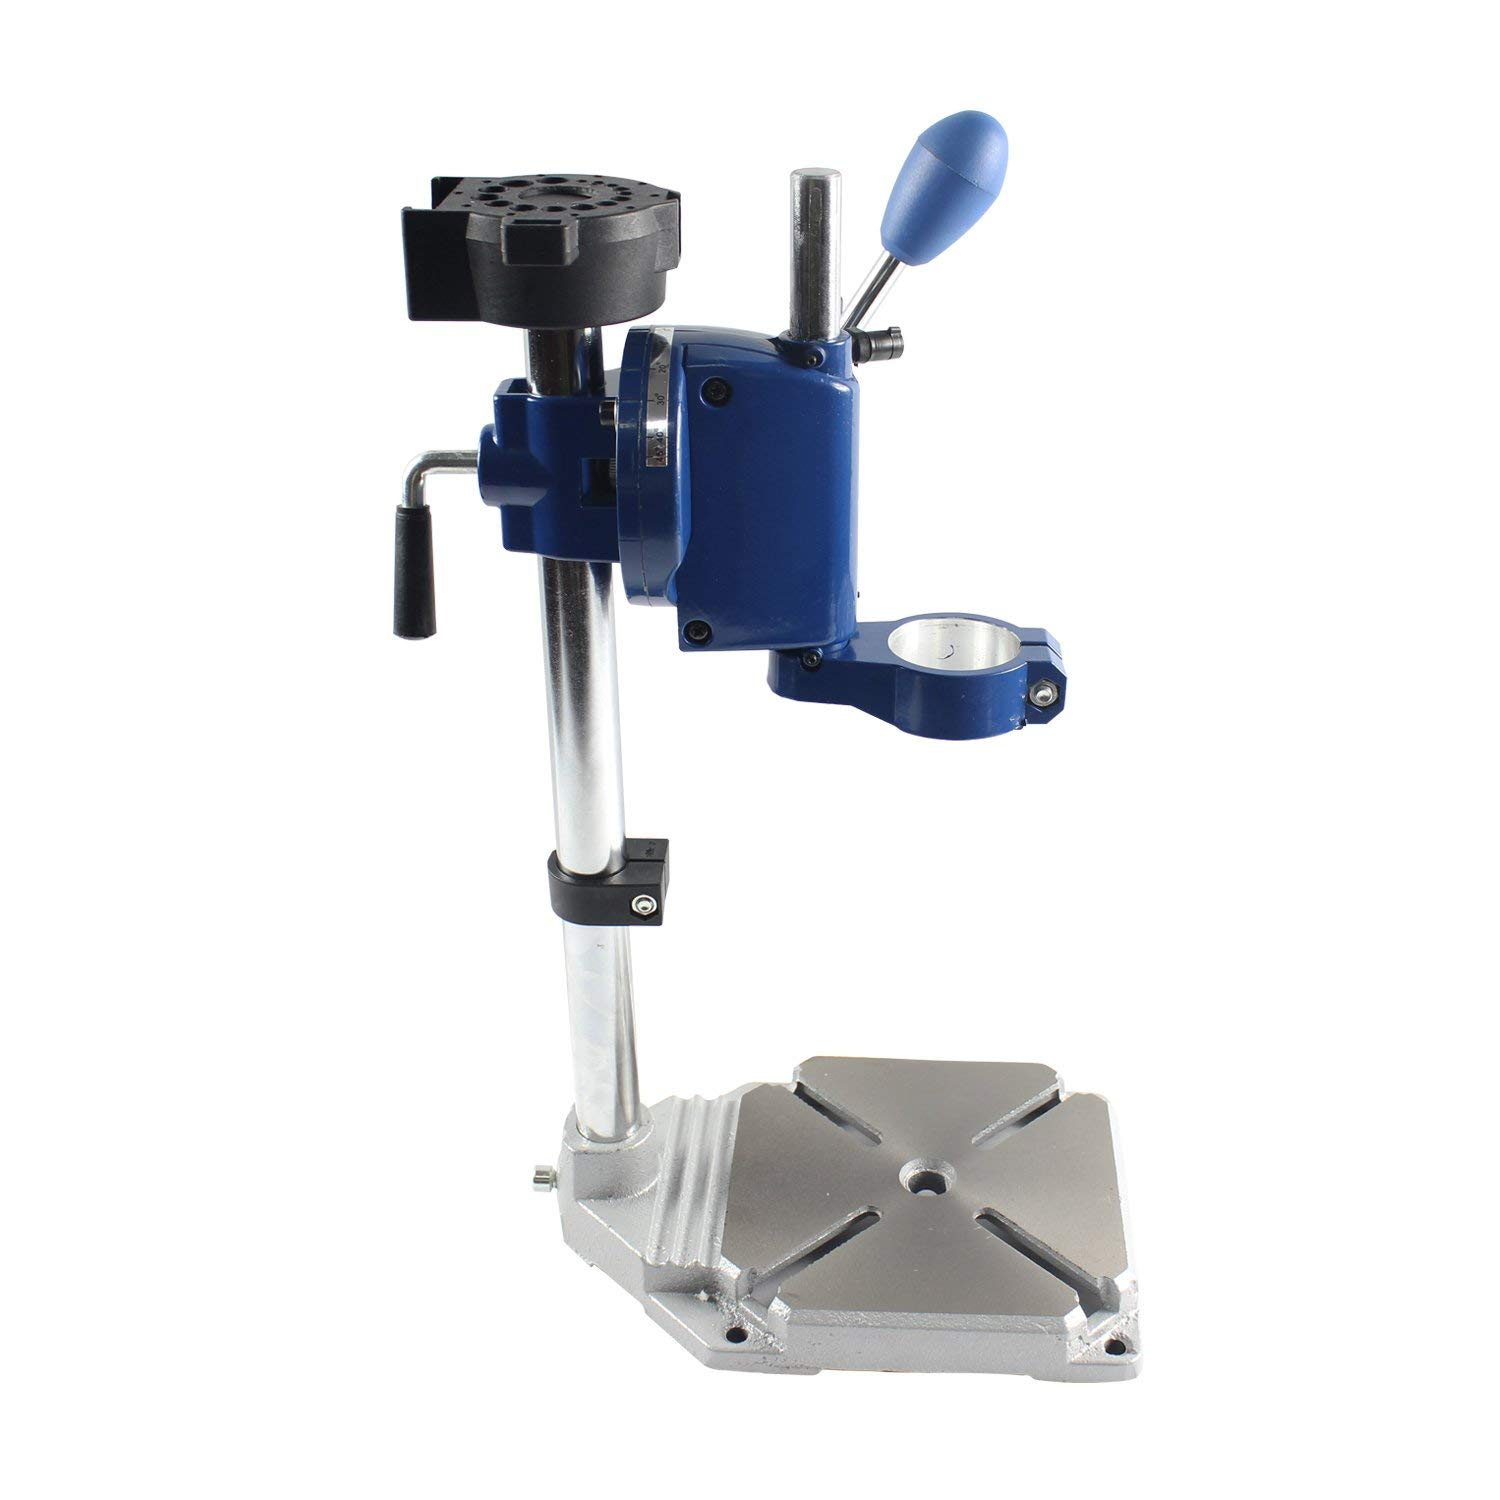 0-90 degrees HUBEST New Design Drill Press Drill Holder for Hand Drill Engraving Machine Electrical drill stand Drilling Collet Table 25-43mm